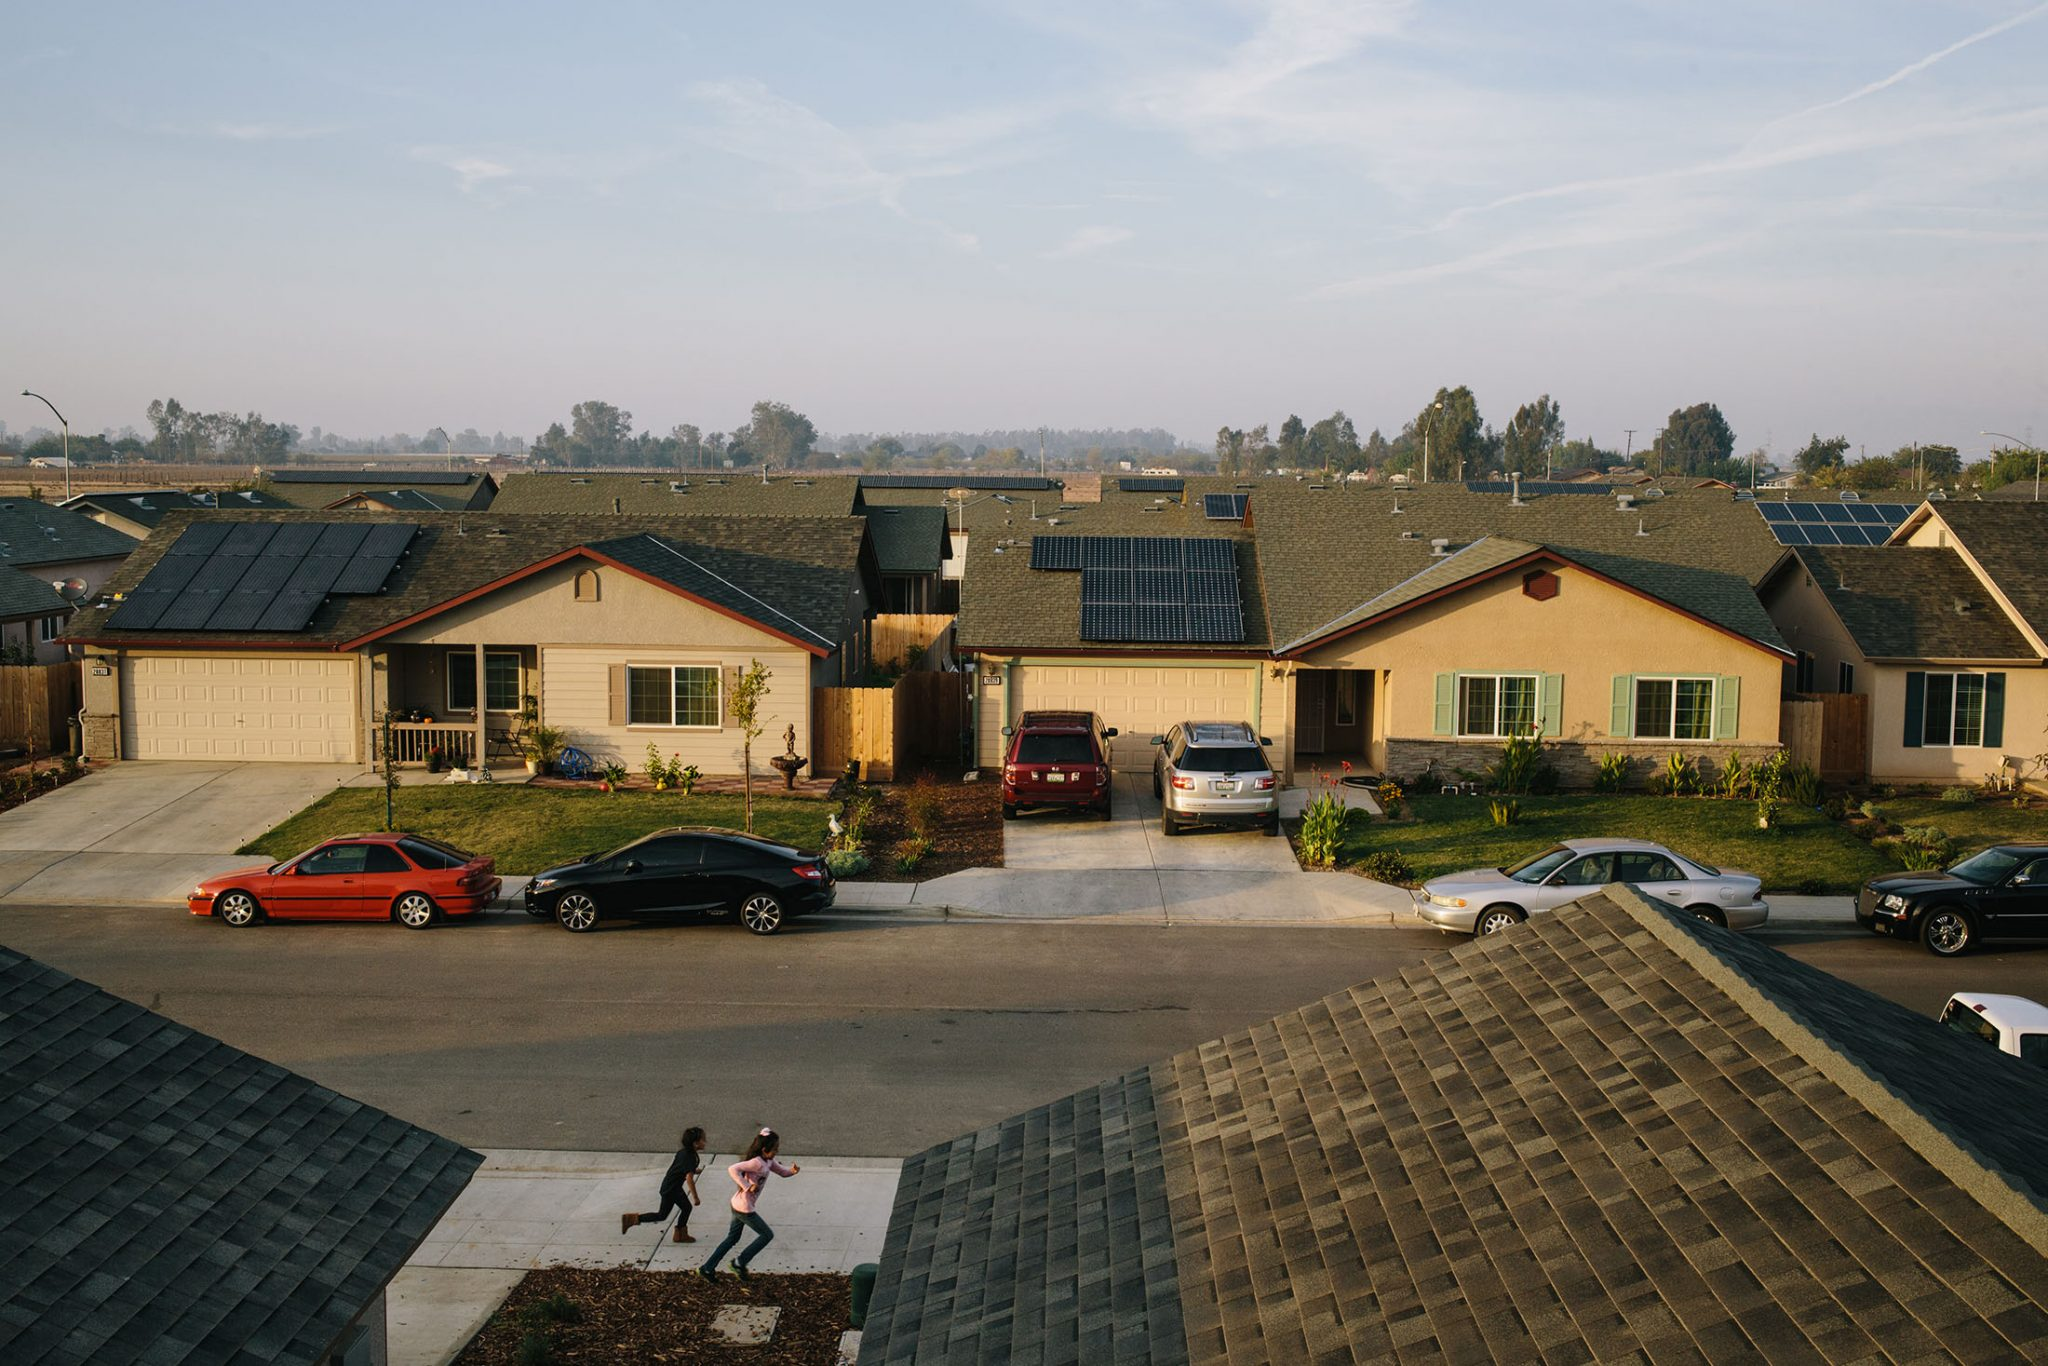 Children play in their neighborhood in Madera, California where Grid Alternatives has retrofitted many of the houses with solar panels.